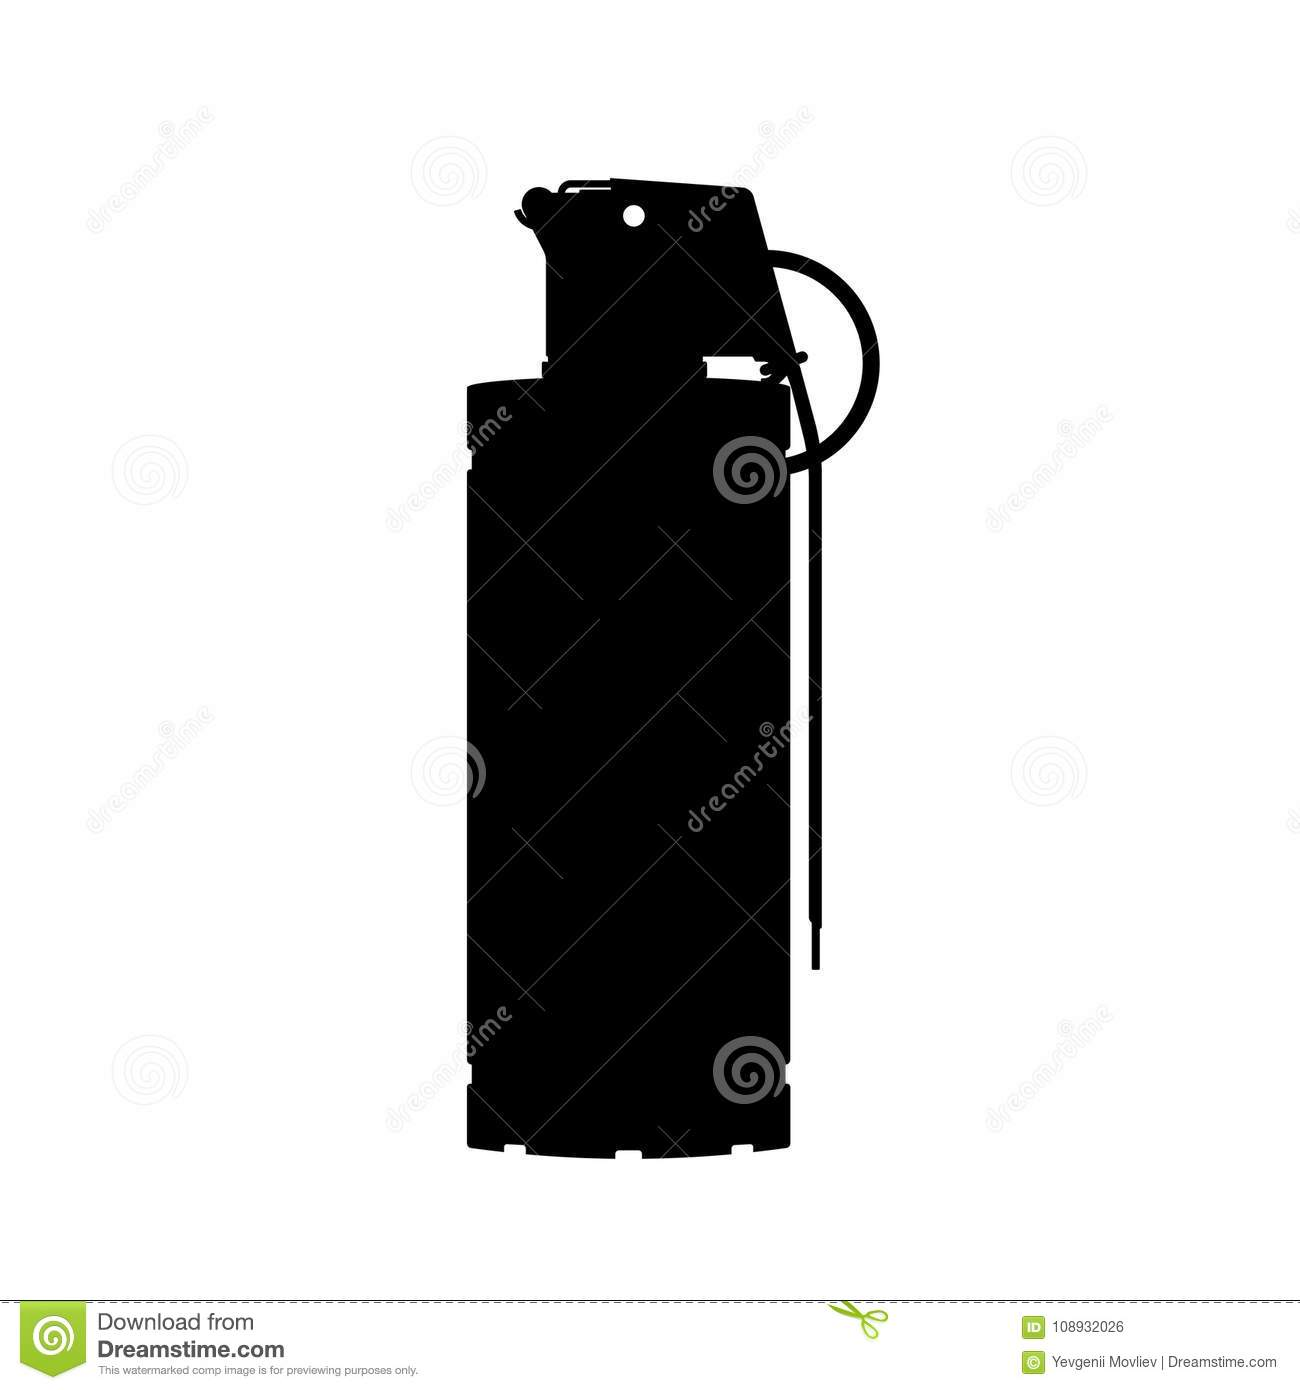 Hand flash grenade of special forces. Black silhouette of anti-terrorist ammunition. Police explosive. Weapon icon